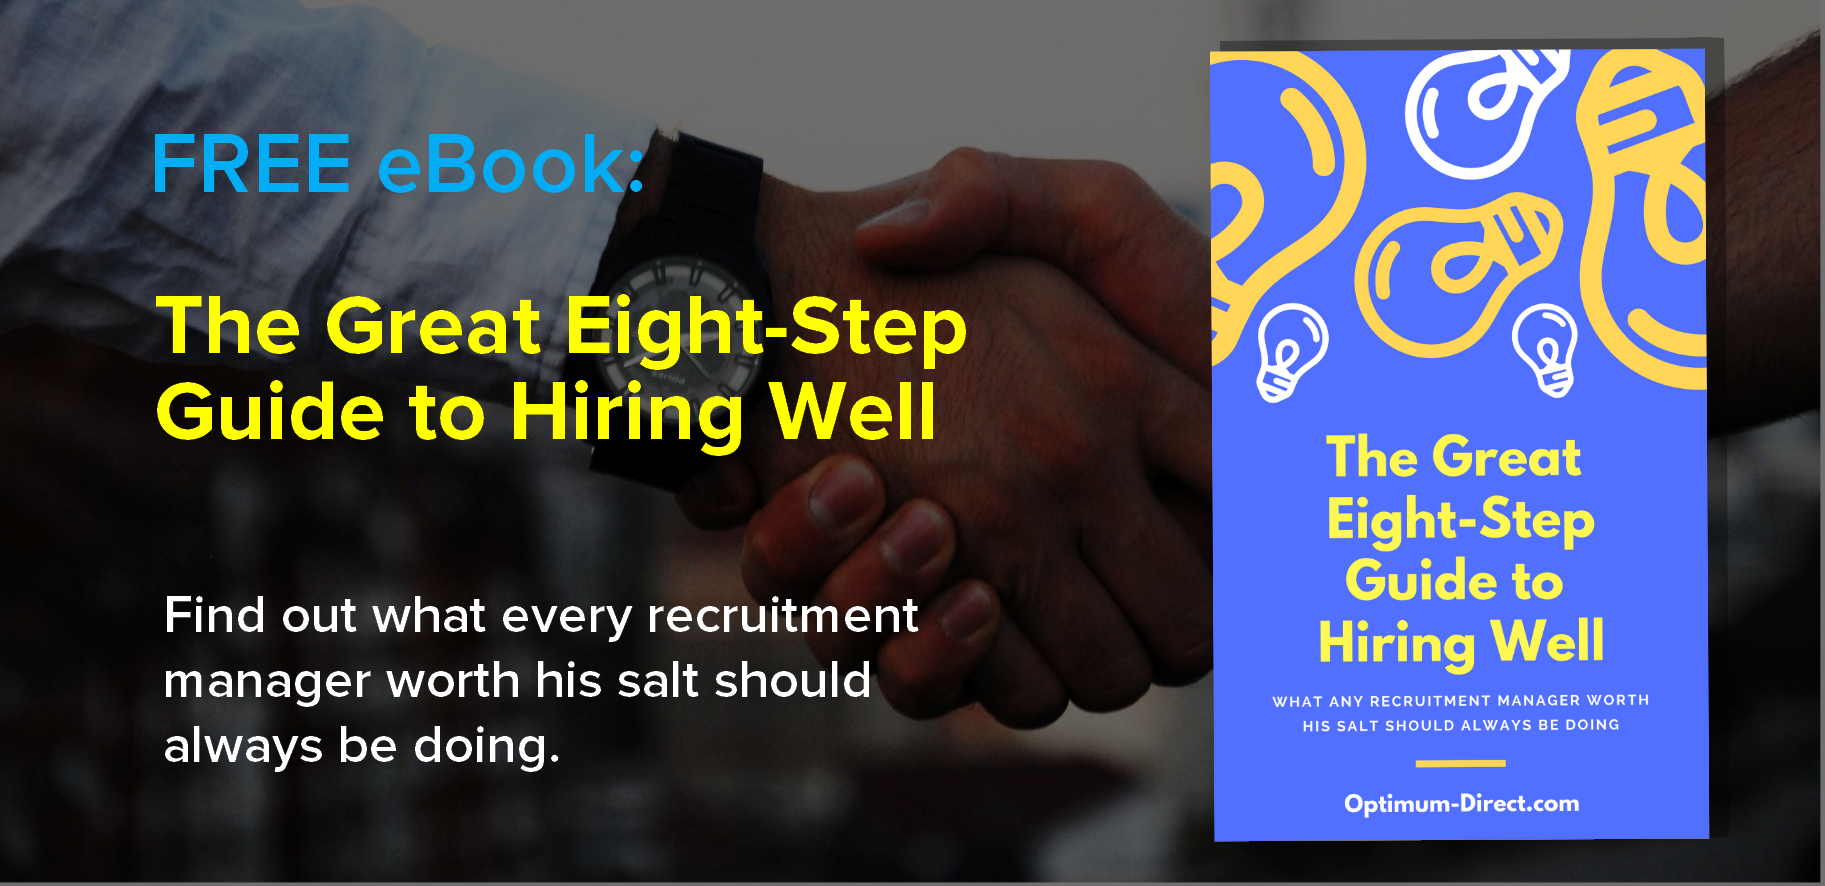 - This document is a compendium of the best practices of cost-effective job recruitment worldwide, compiled by the Optimum Direct team in just one guide for your convenience and recruiting excellence.